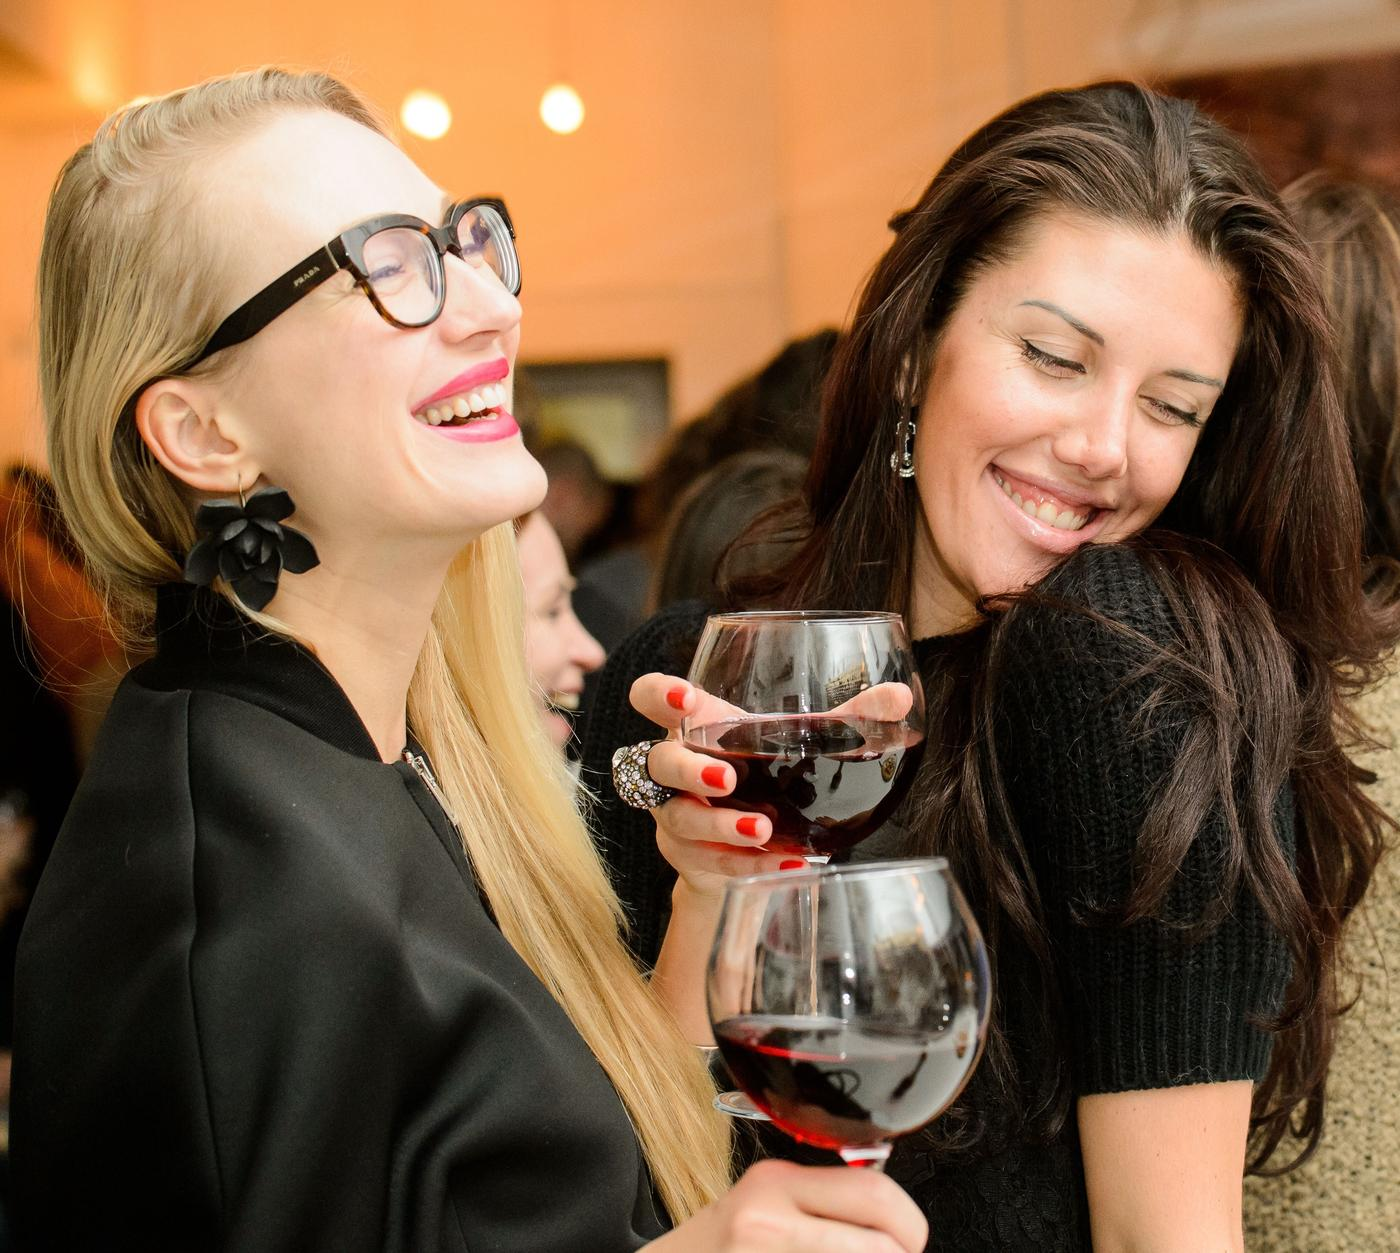 Drinking a bottle of wine a day keeps the doctor away, says scientist